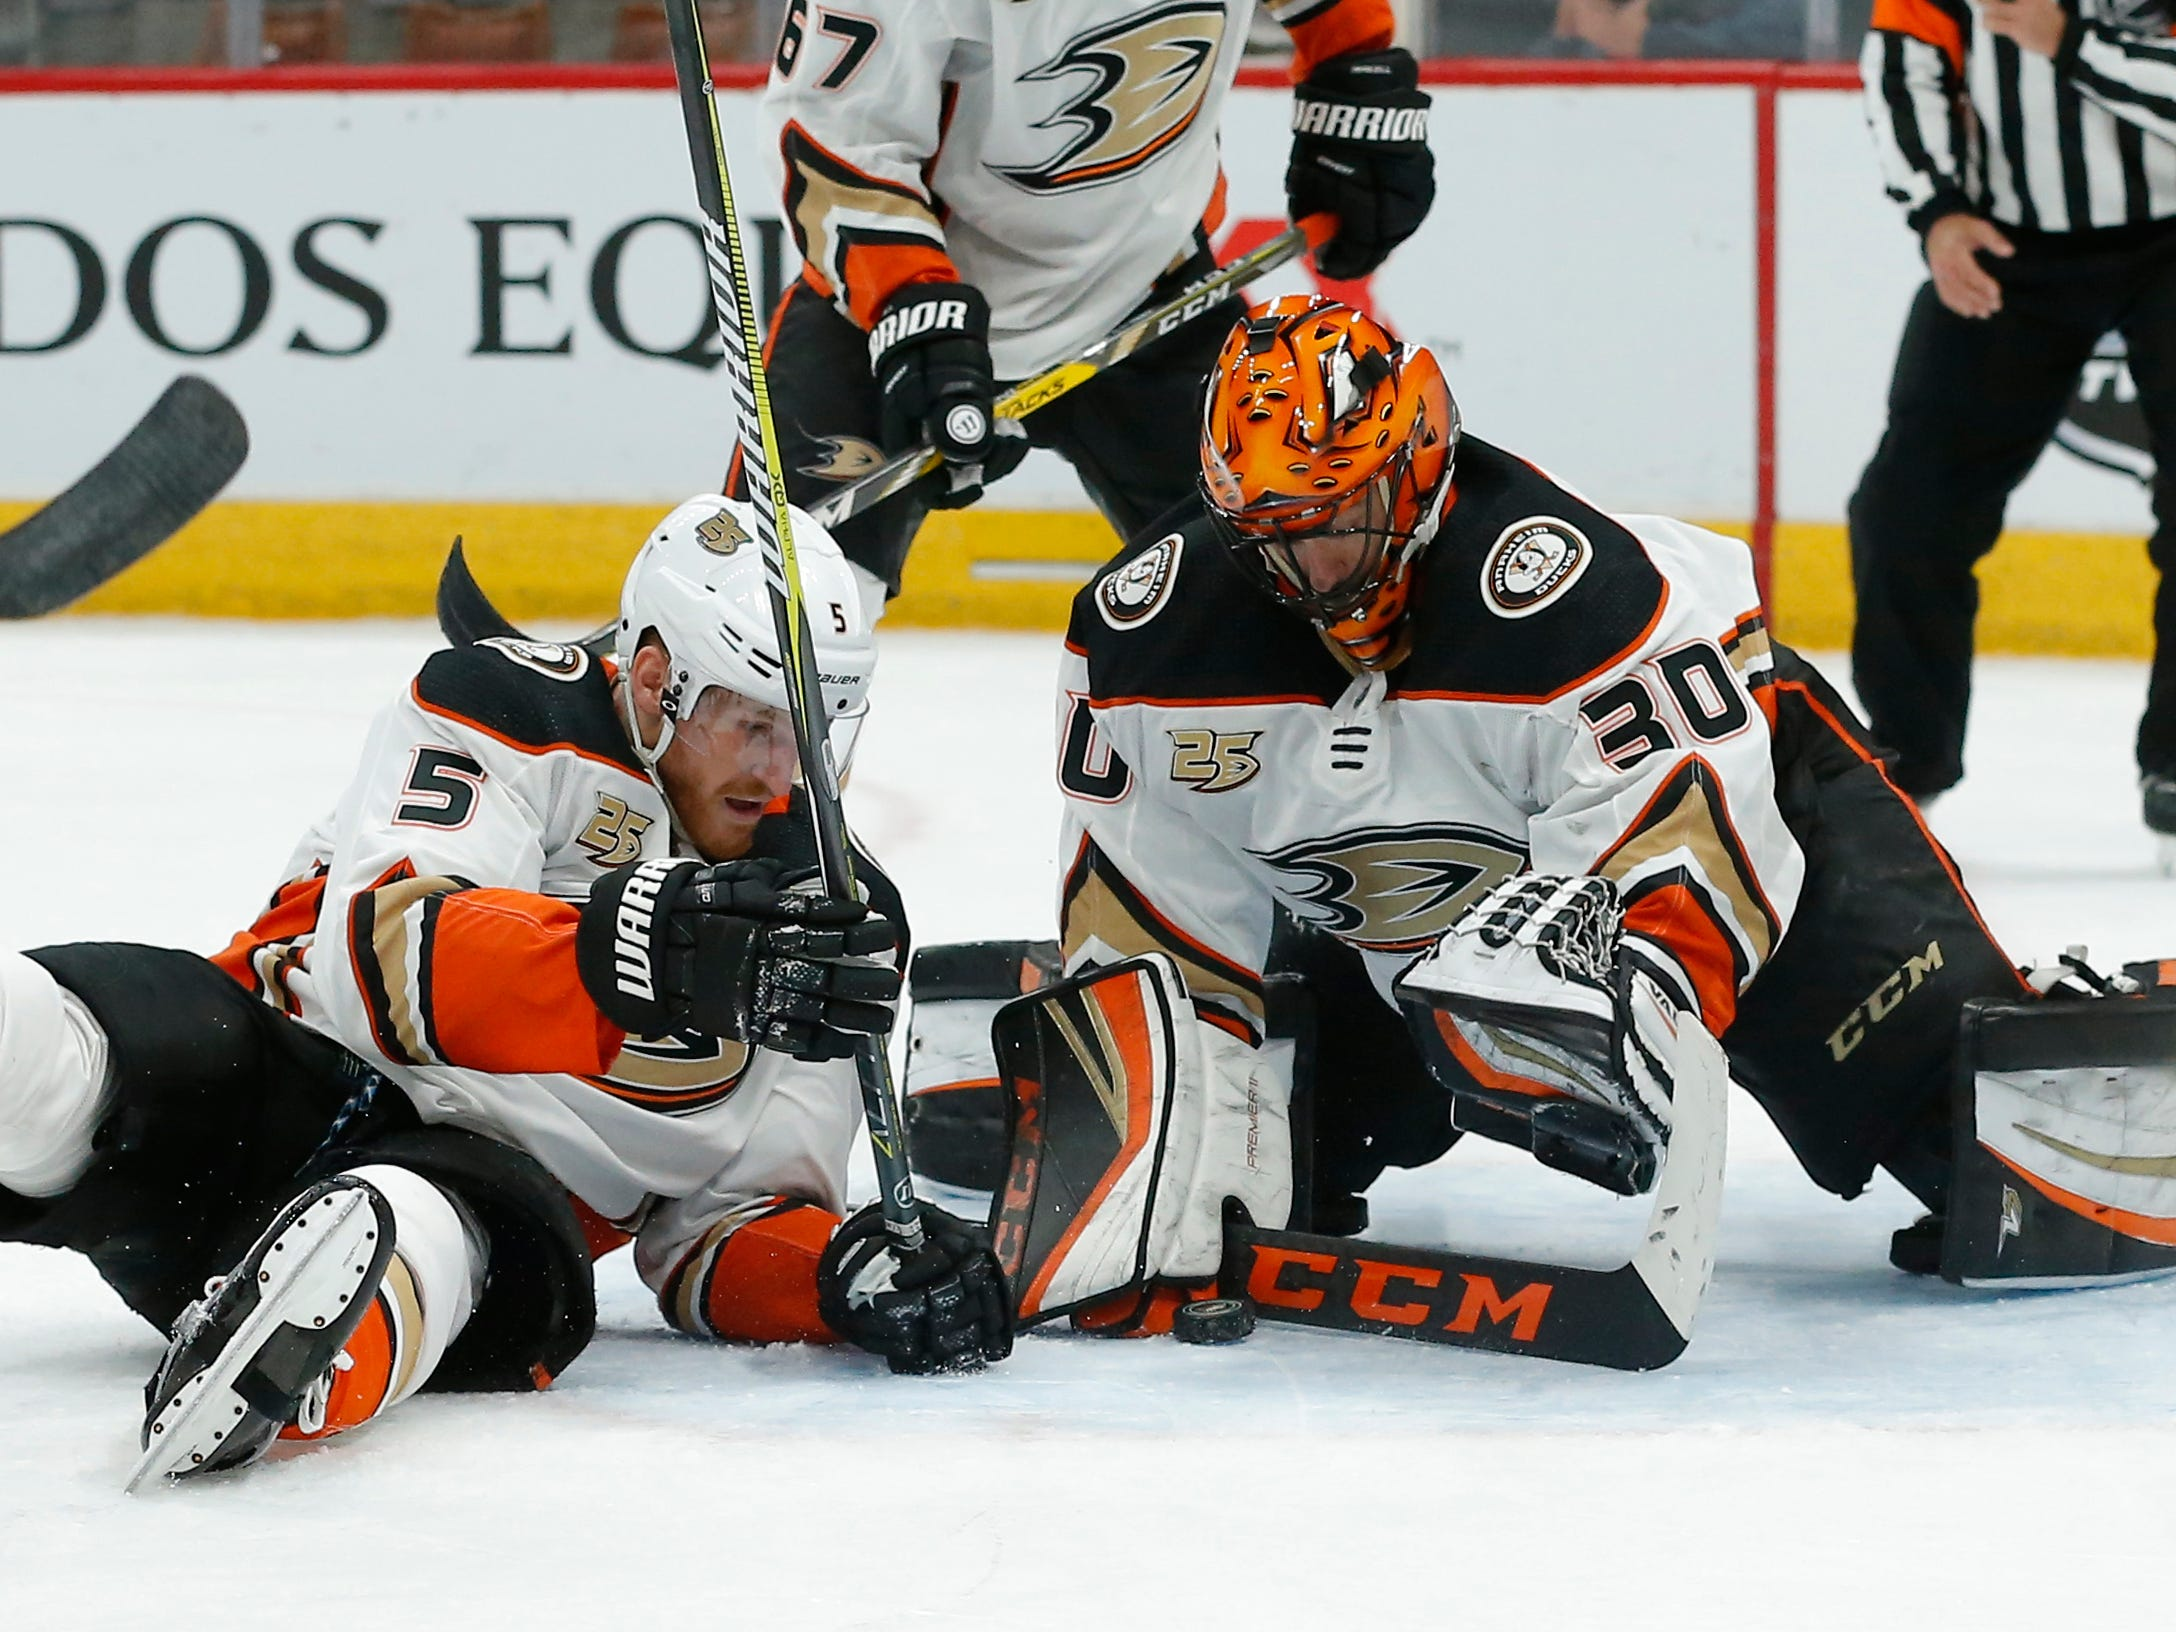 Anaheim Ducks goaltender Ryan Miller (30) and Korbinian Holzer cover up the puck in the second period during an NHL hockey game against the Arizona Coyotes, Thursday, March 14, 2019, in Glendale, Ariz.